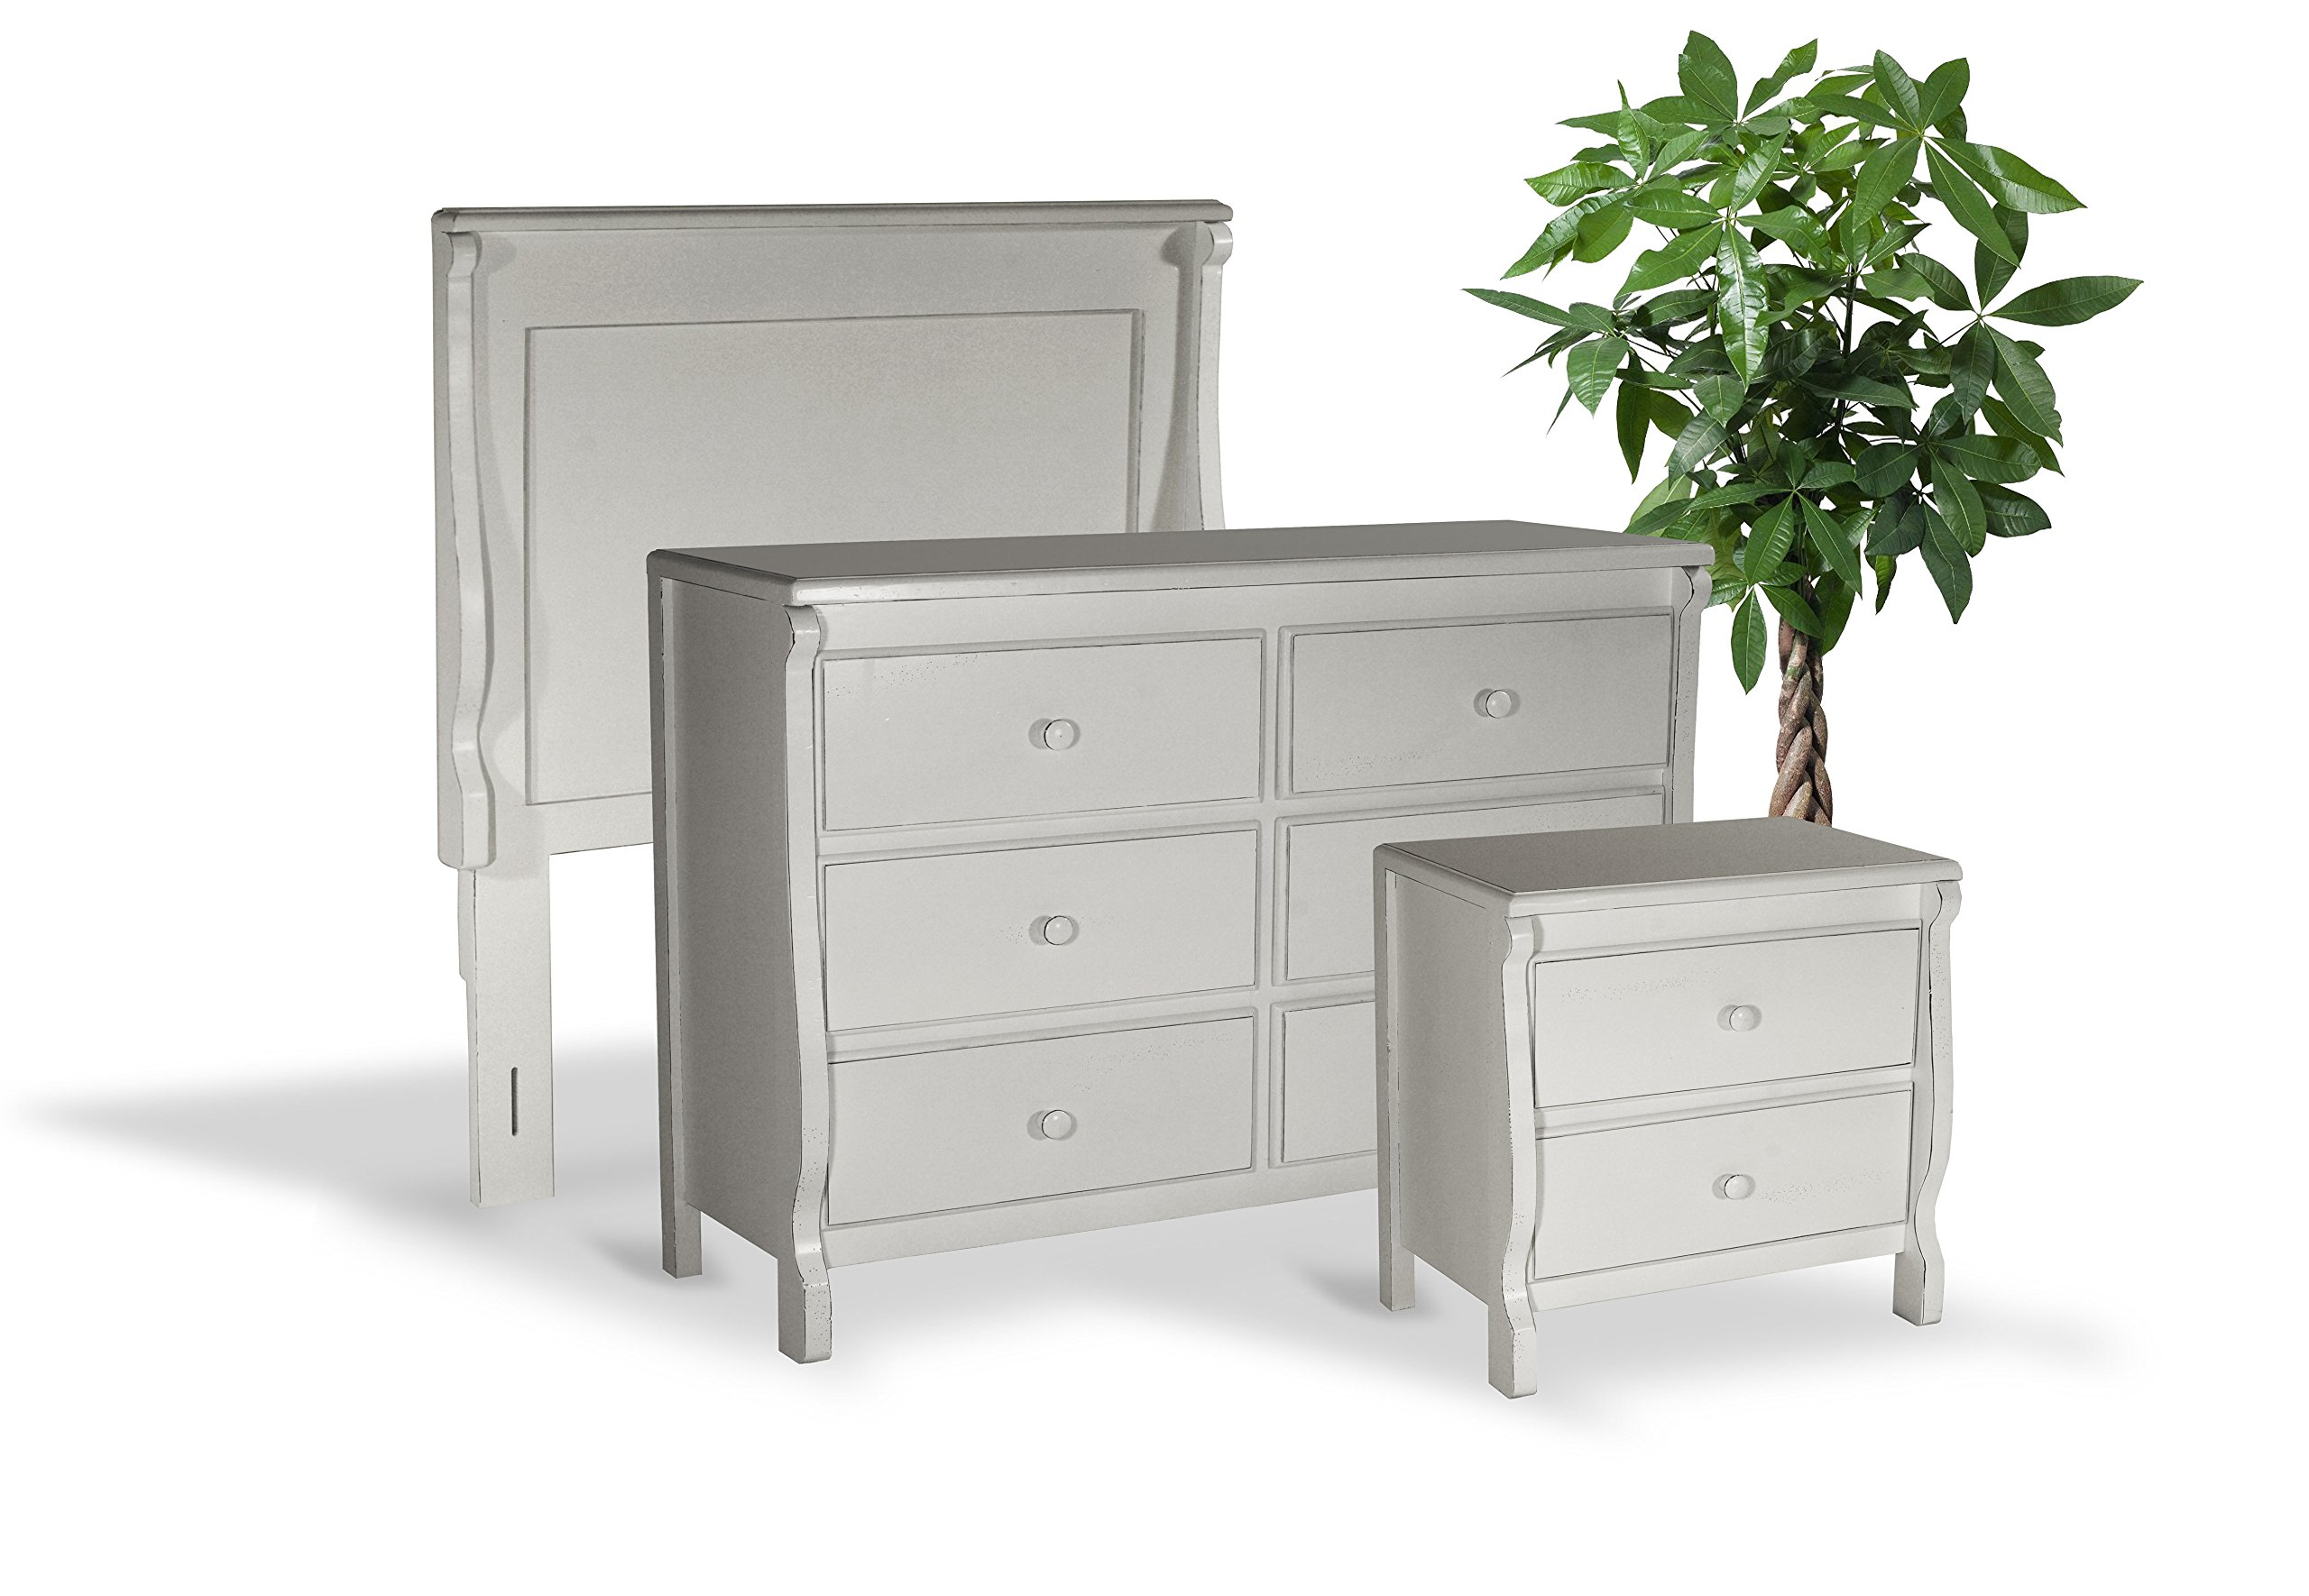 MILAN Sleep+Store M3I1L1A5N, Bedroom Furniture All Wood Fully Assembled Ready to Use in Fashionable Hand Finished Antiqued, Group with Headboard to Transform Sleep Areas, White, 3 Piece